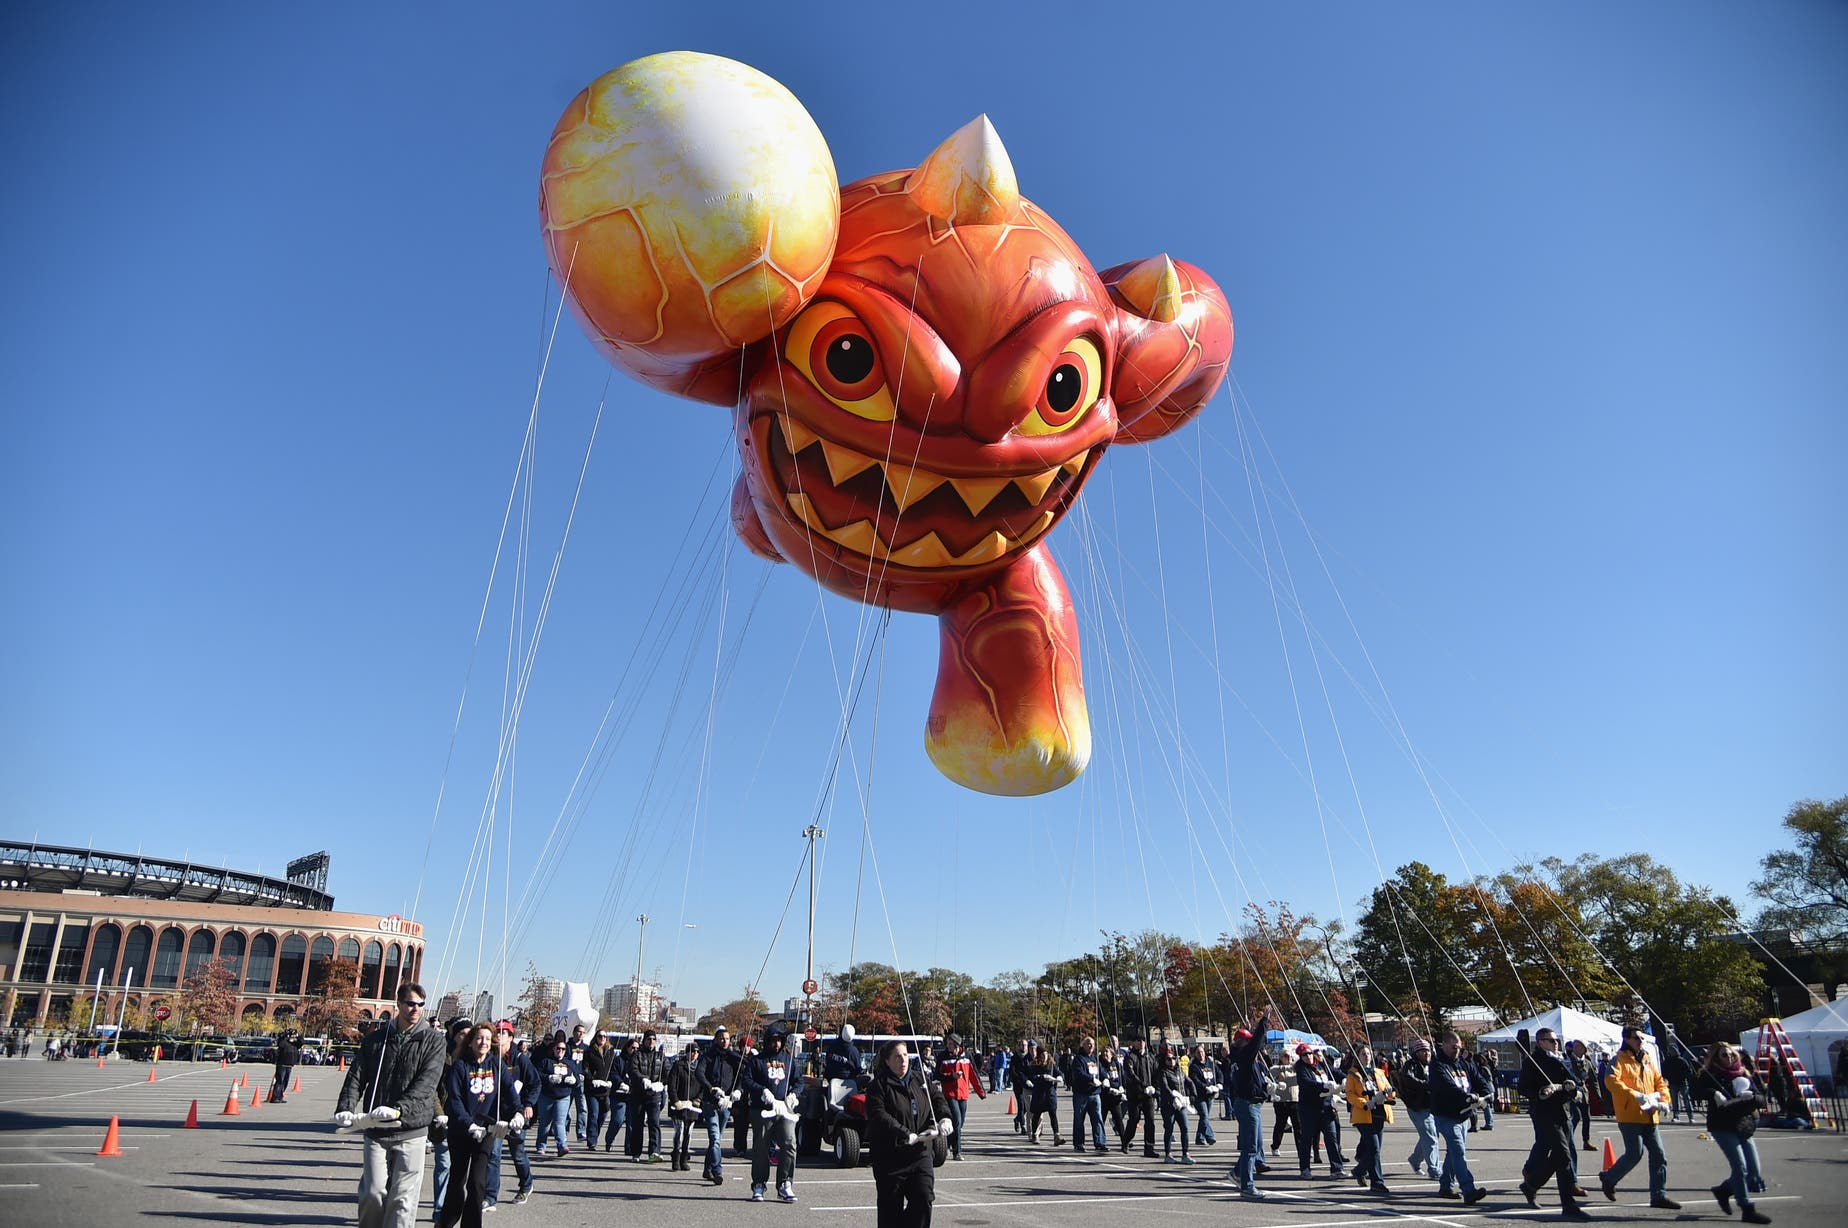 Skylanders' Eruptor Balloon Takes Flight at Macy's BalloonFest